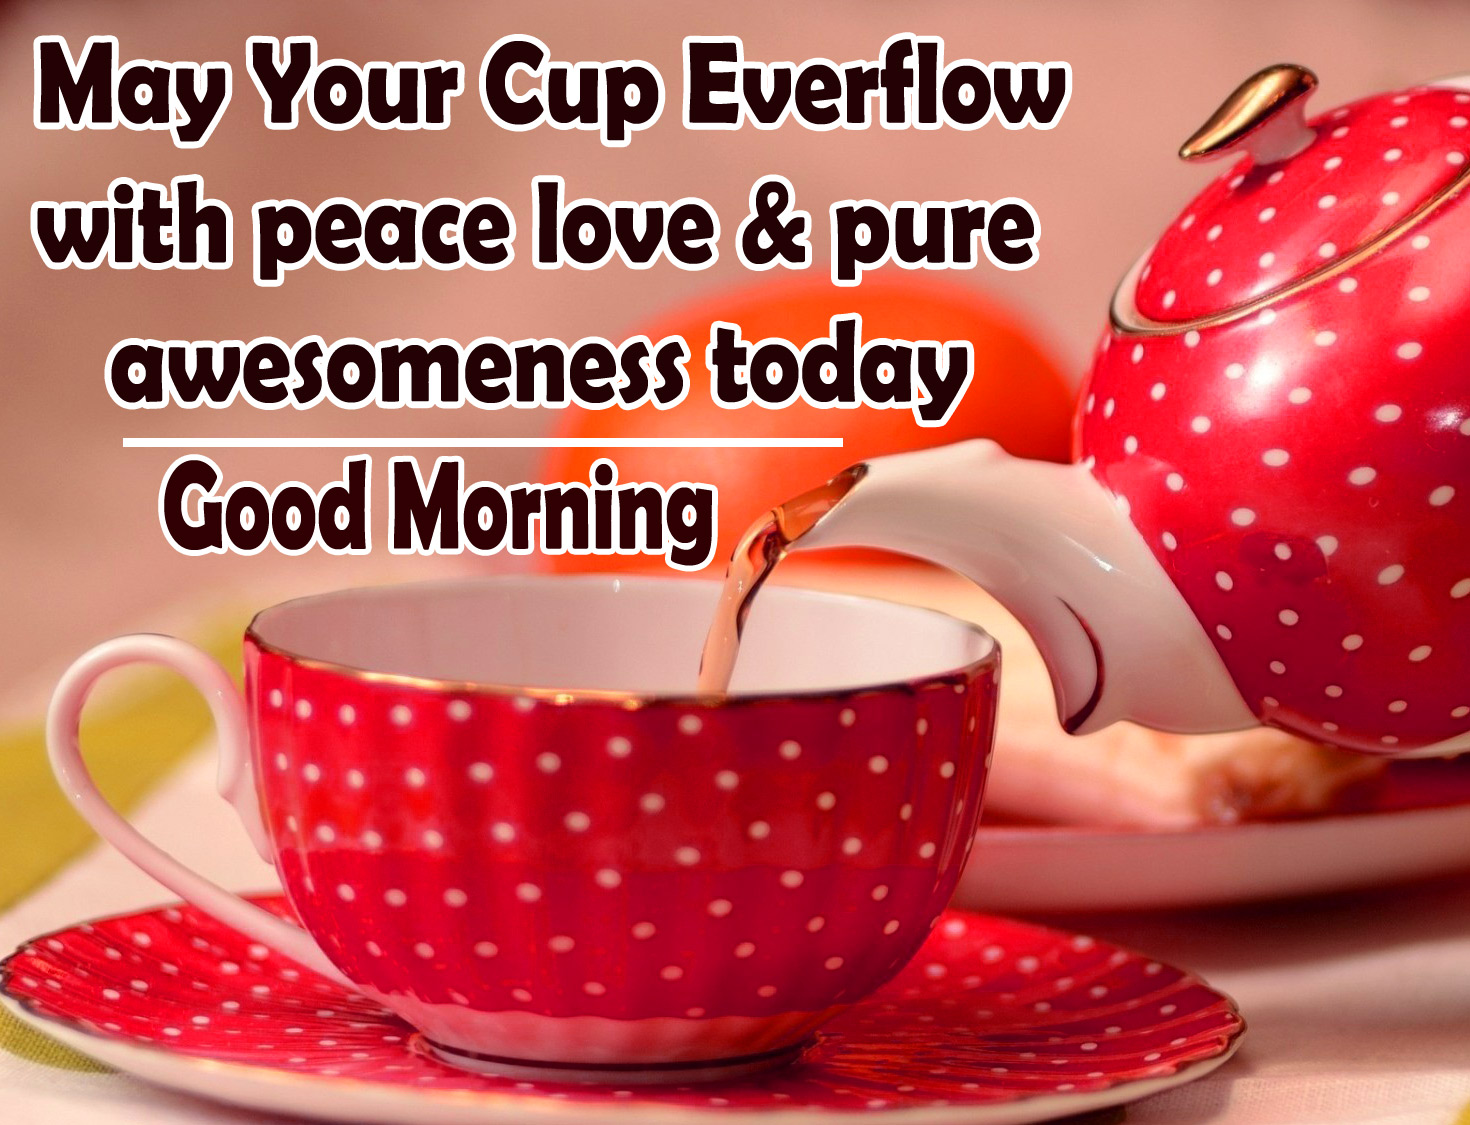 Good Morning Tea Cup Images Free